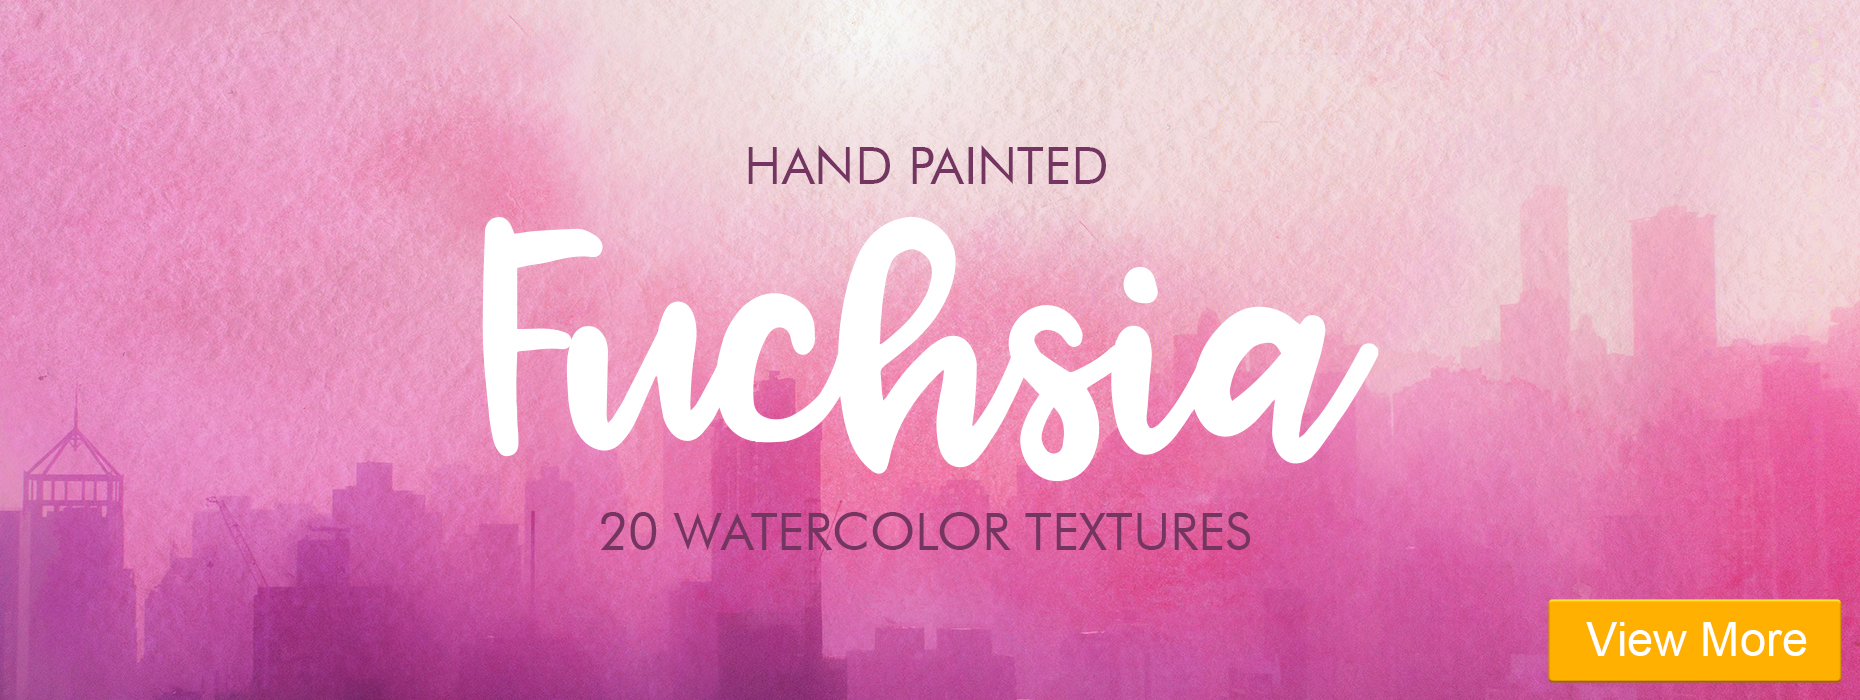 watercolor texture photoshop free vintage portrait lightroom presets banner girl